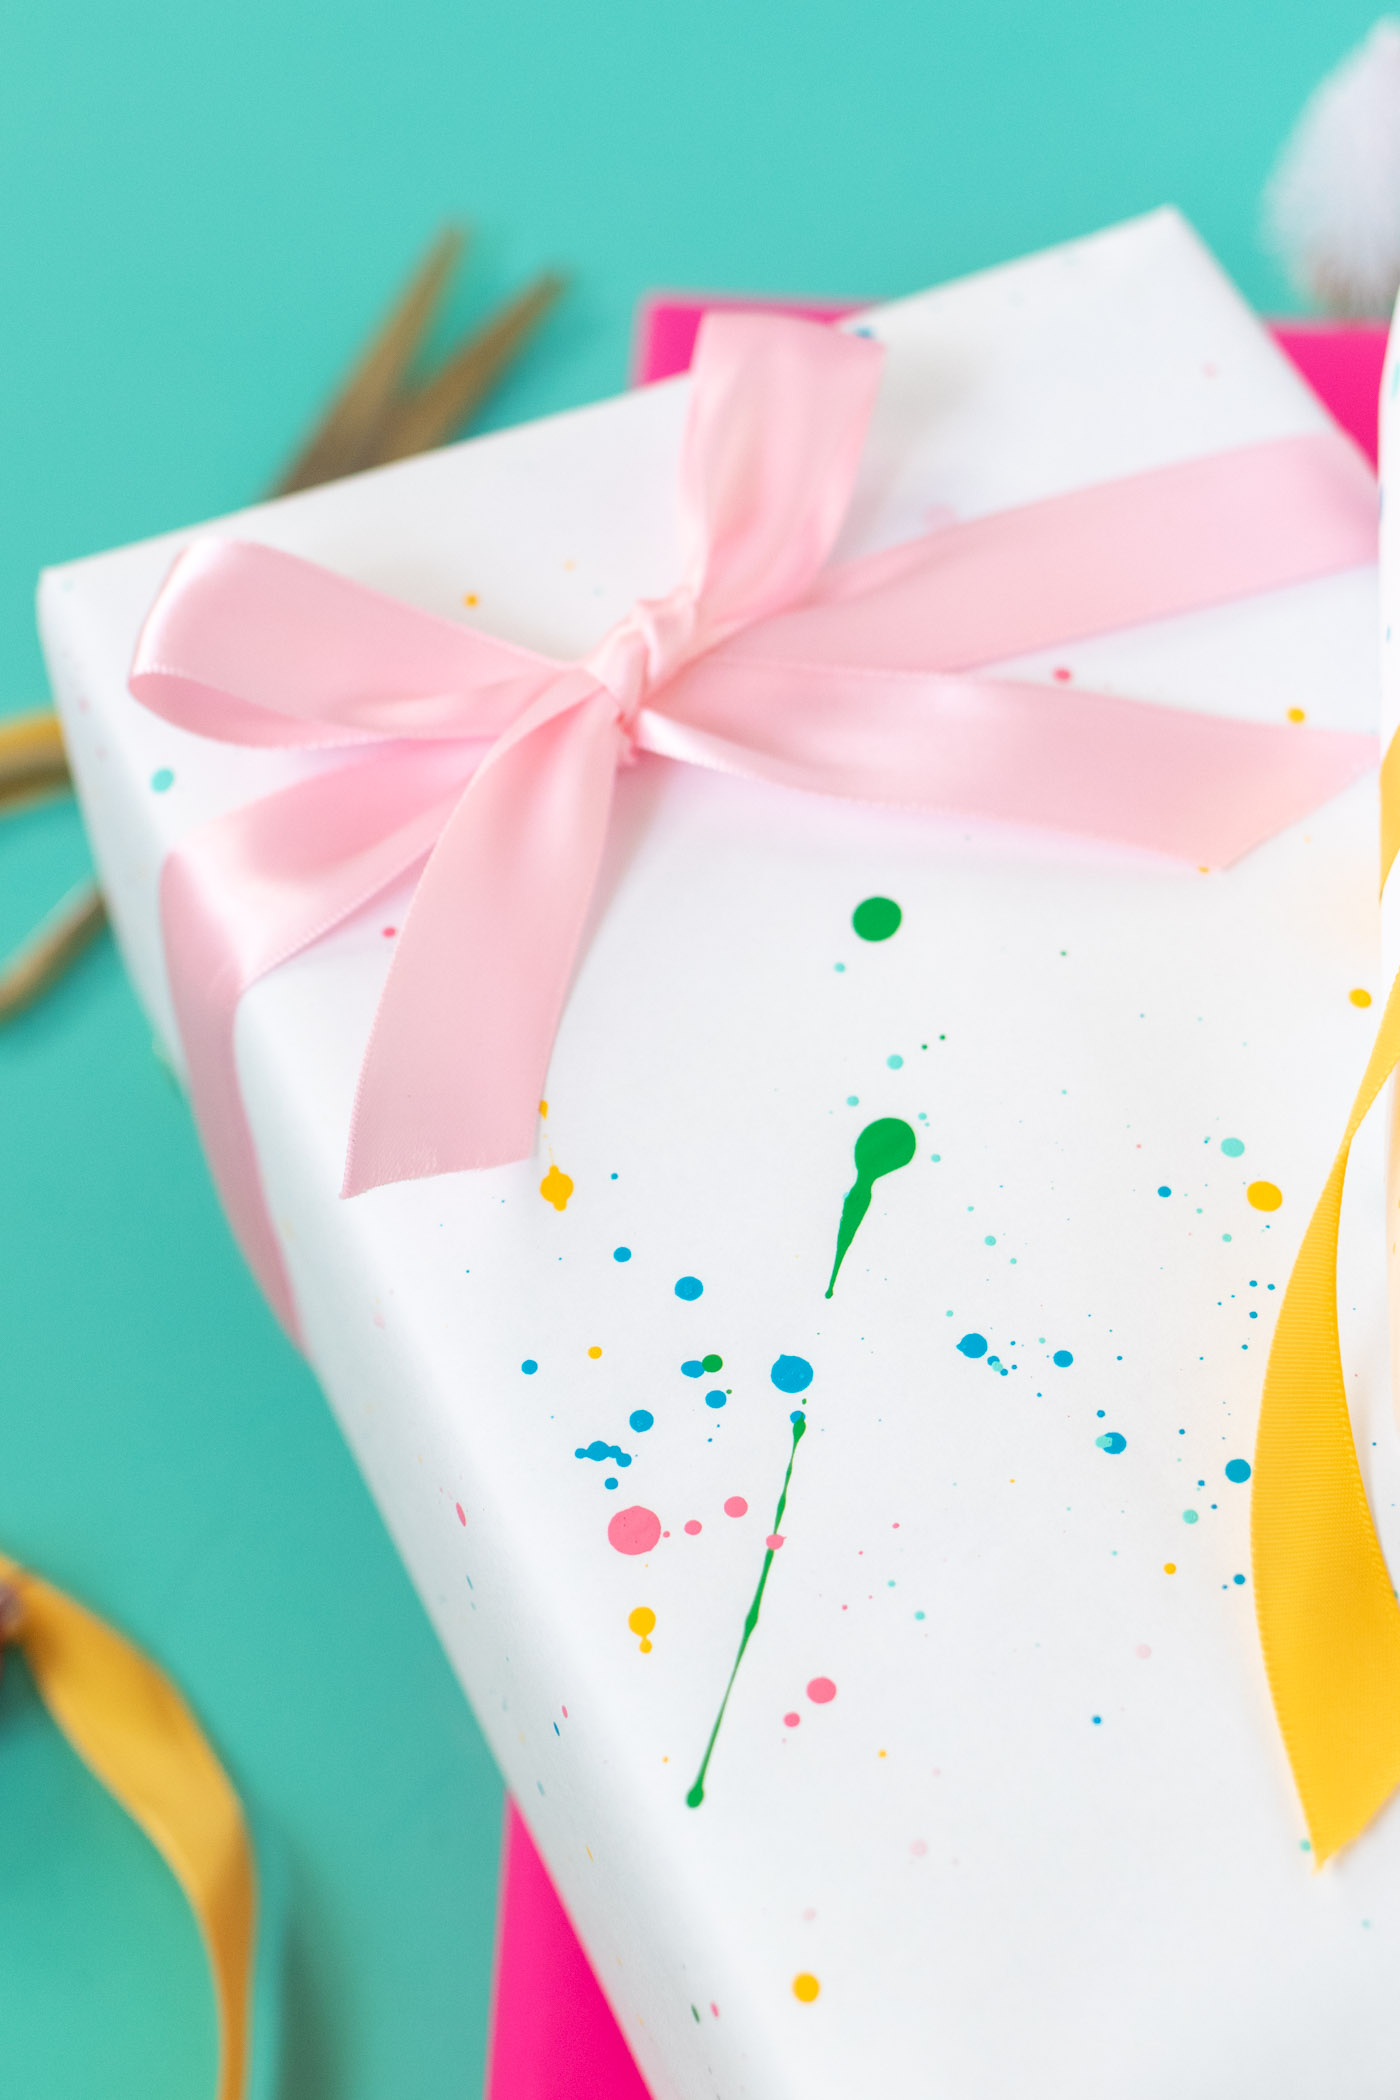 DY Splatter Painted Gift Wrap // Make your own wrapping paper with this simple splatter technique using colorful supplies from @joann! Add 80s and 90s-inspired splatter designs to plain paper for fun DIY gift wrap for Christmas and beyond! #ad #handmadewithjoann #giftwrap #diygiftwrap #wrappingpaper #splatterpaint #painting #rainbow